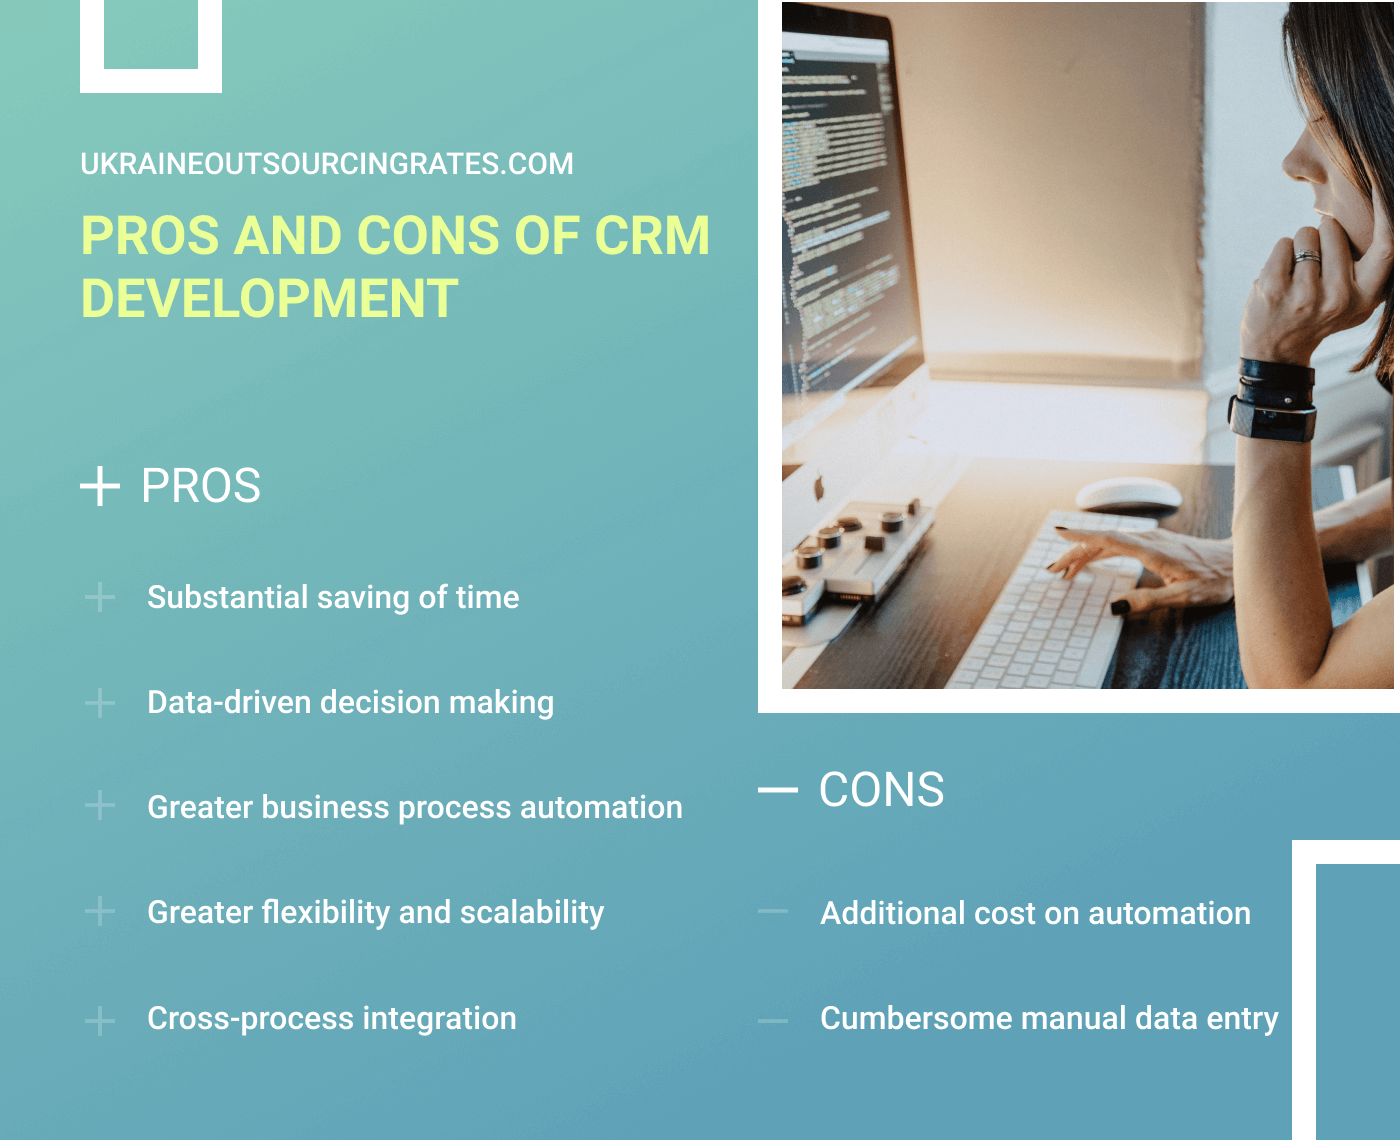 crm development pros and cons